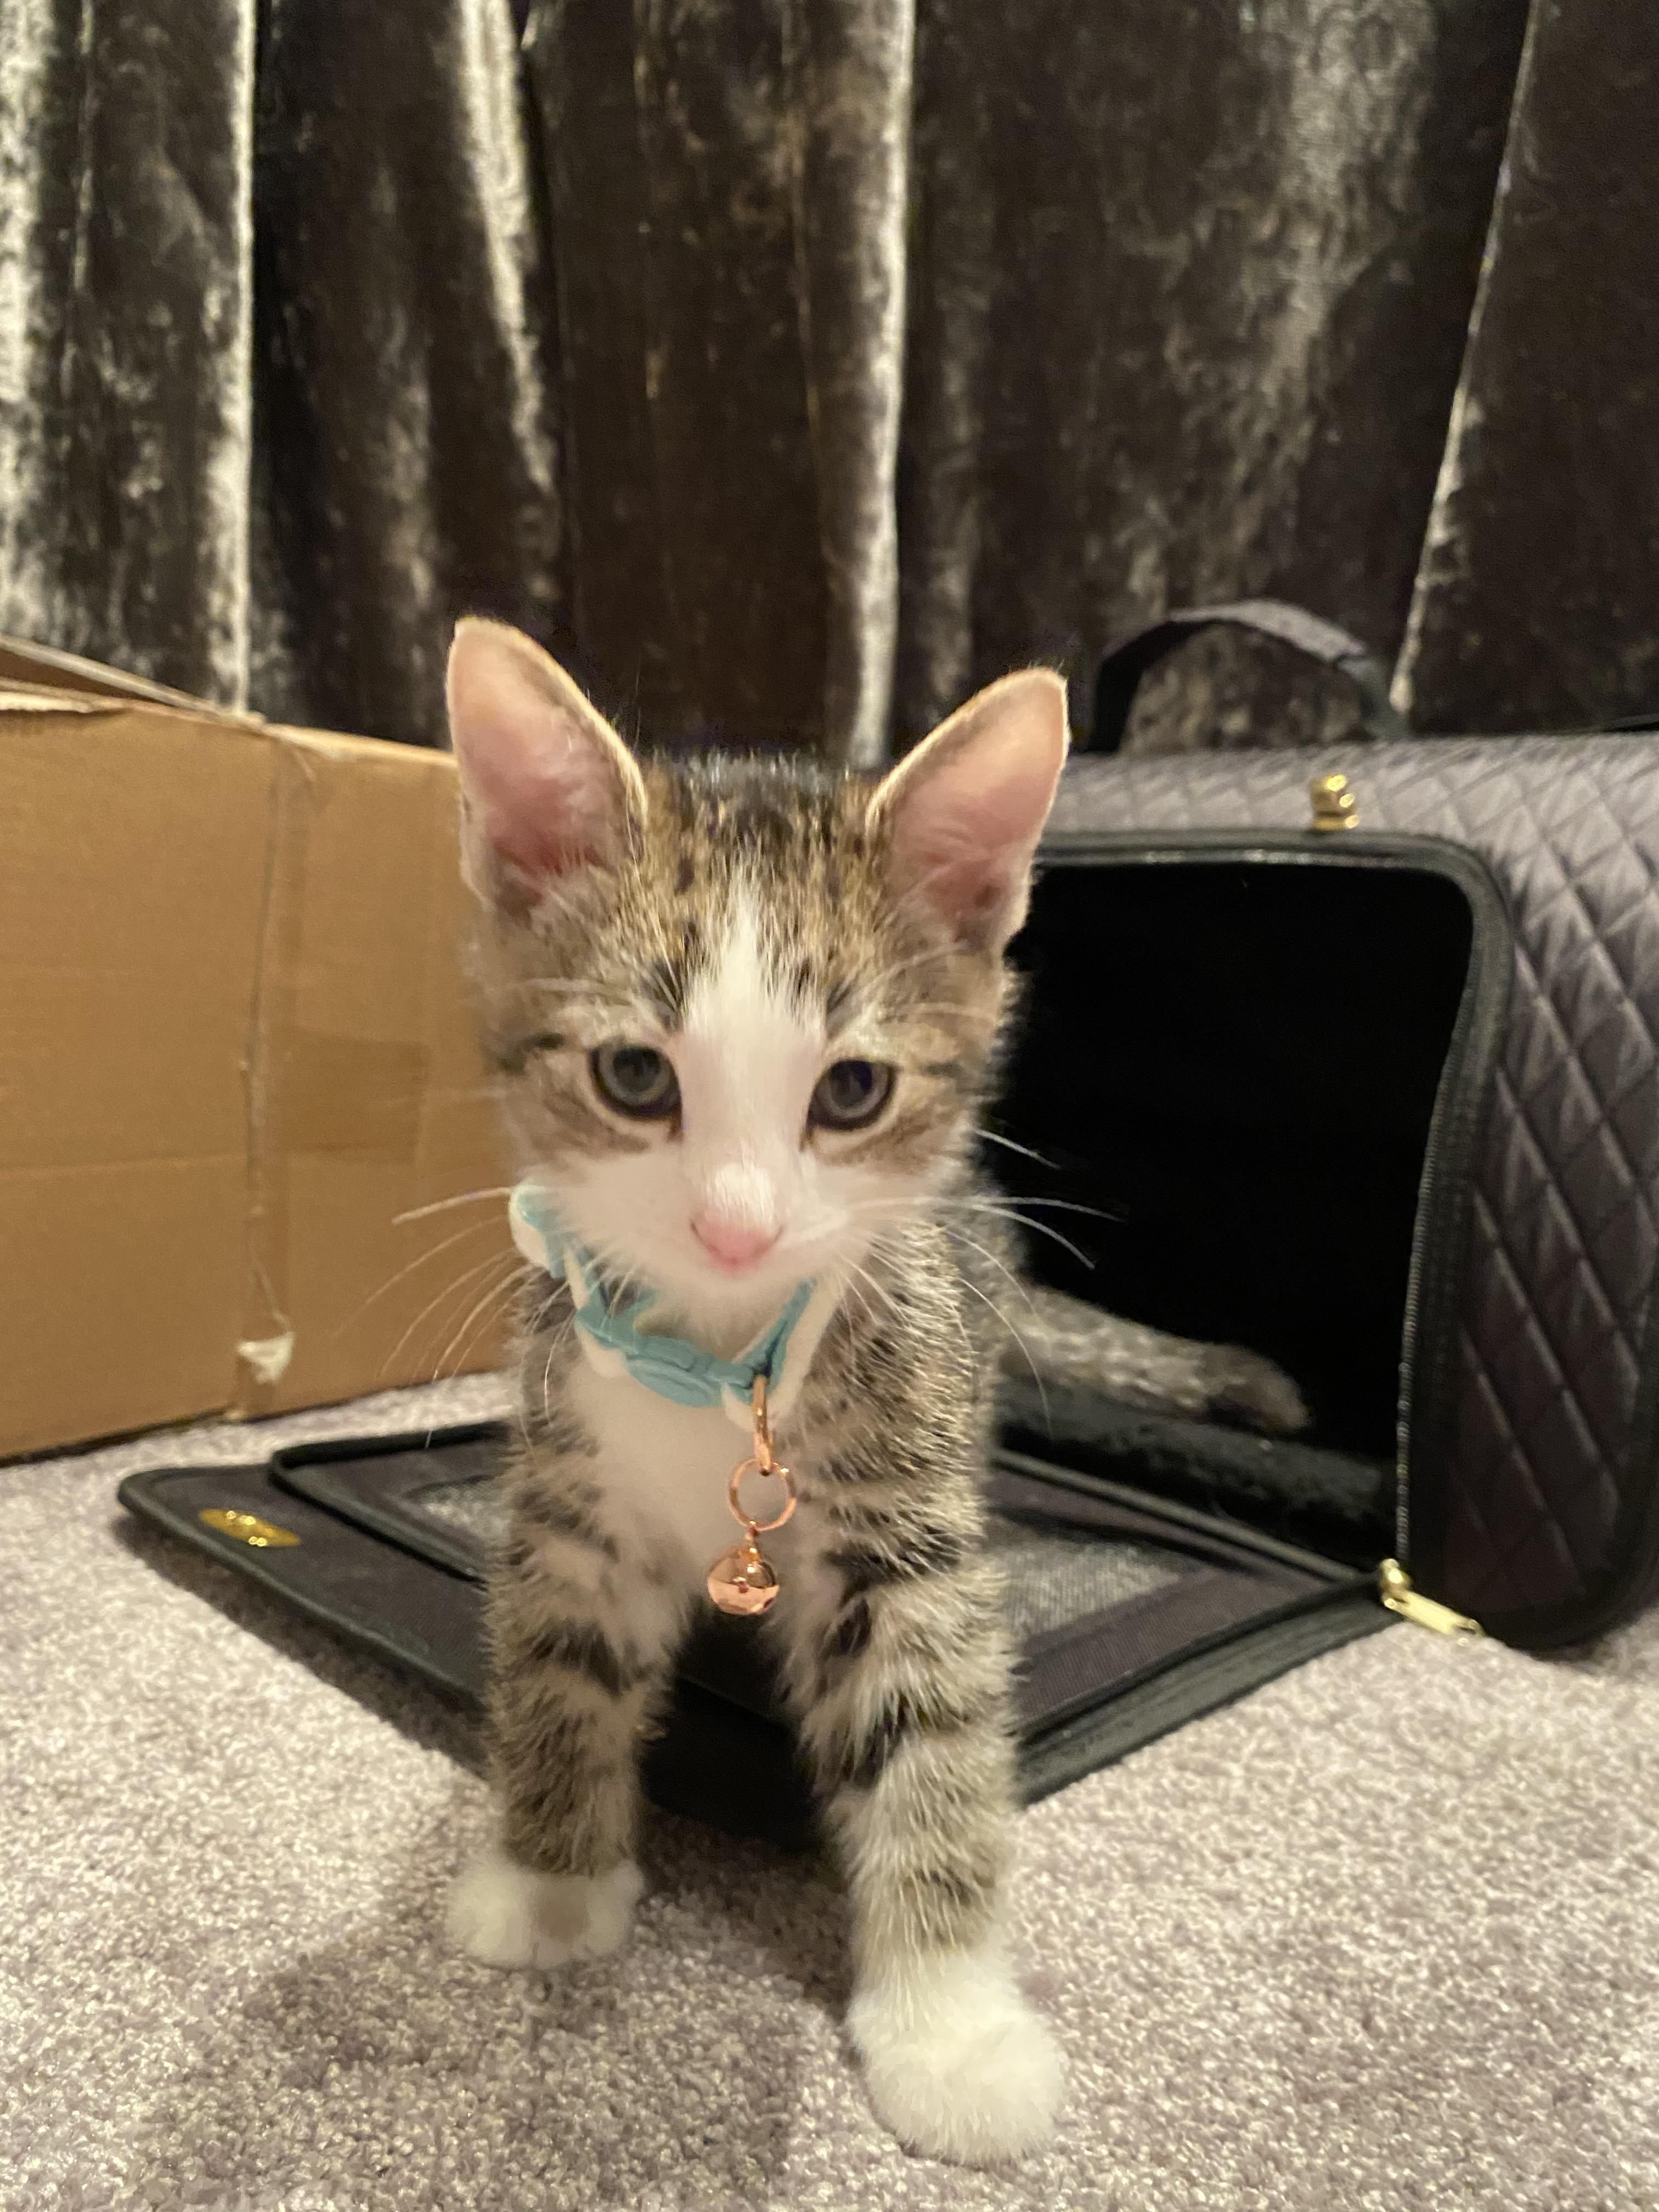 Ive Just Brought Home My First Kitten He Hid Under The Sofa For A Few Hours But Came Out To Play Just Before Bedtime Https Ift Tt 2 In 2020 Kitten Bedtime Cat Pics